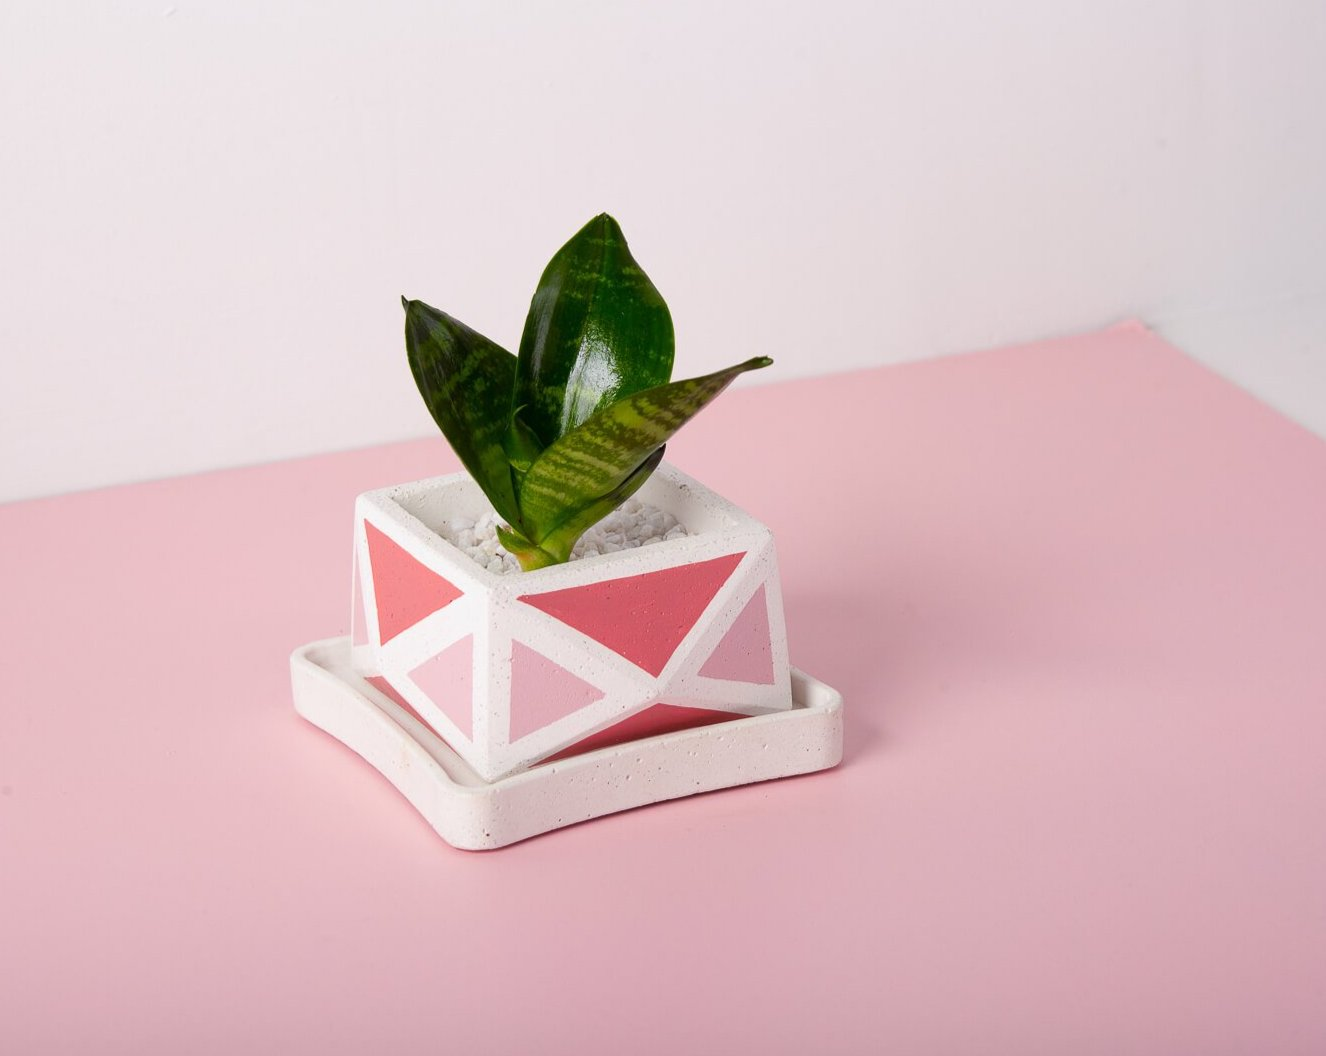 Concrete Crystal Planter - Pink Invertrix Collection - Eliteearth